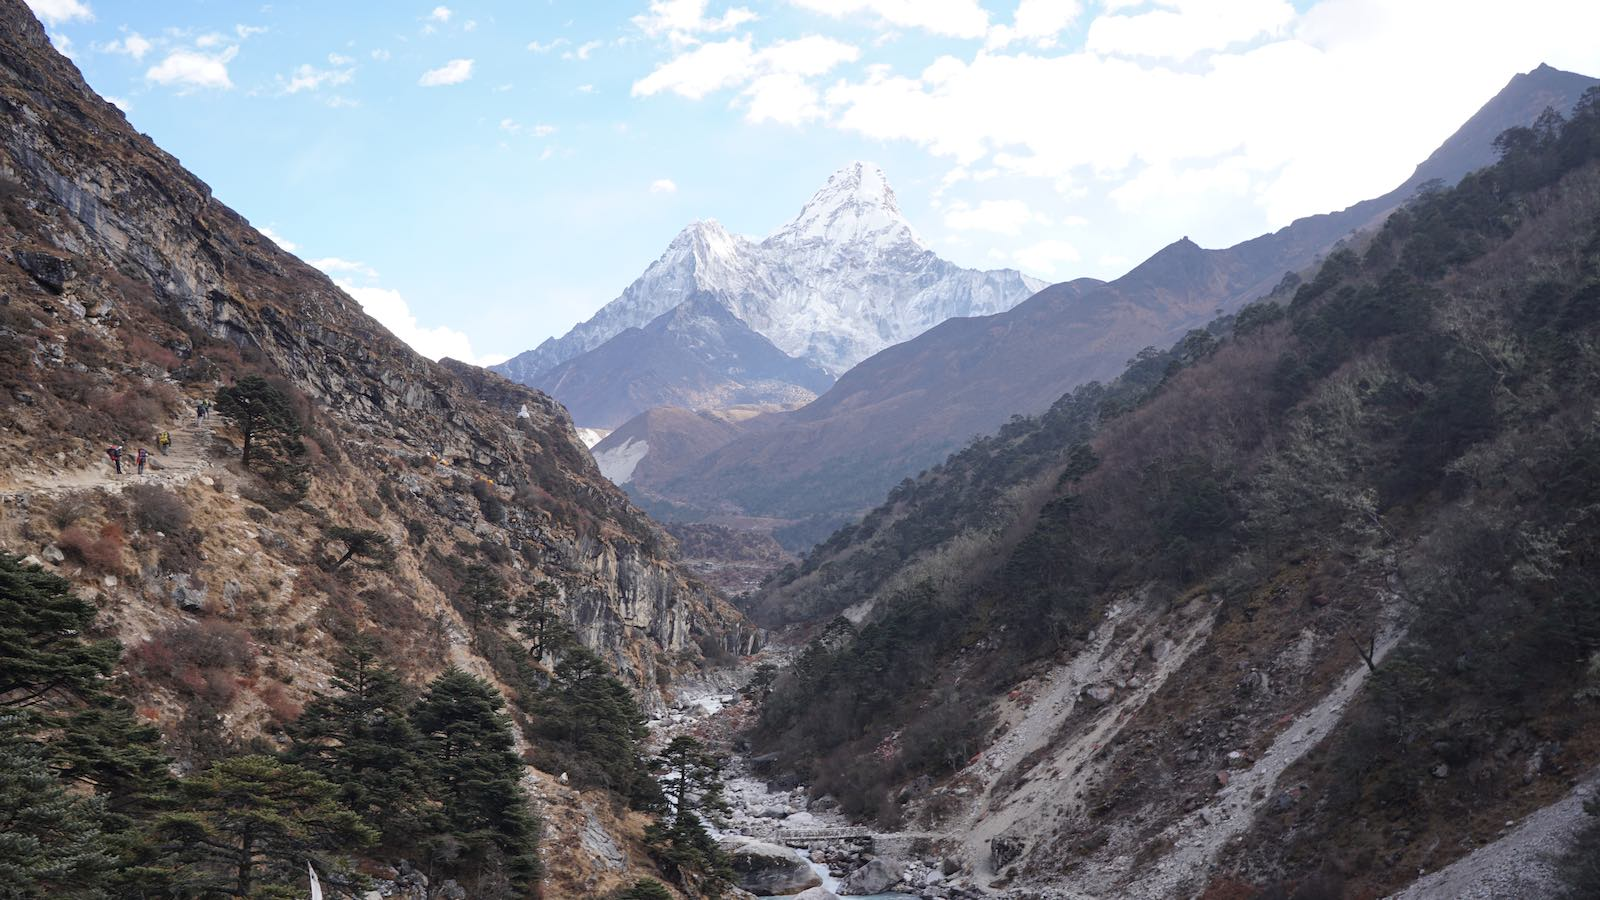 Got back down below the tree line, turned back at a river crossing for one more gorgeous look at the peak of Ama Dablam